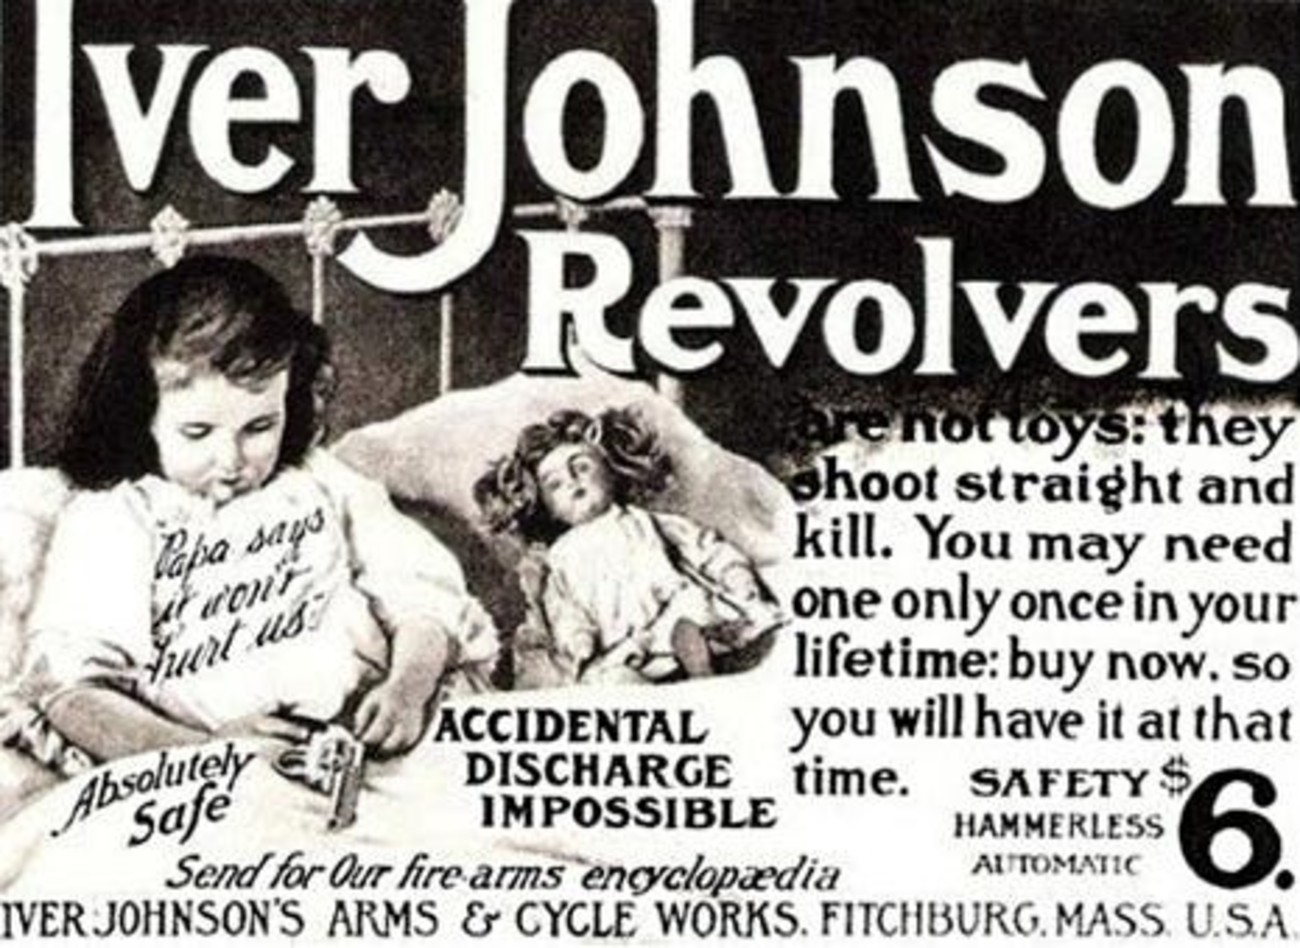 Old gun ad involving kids